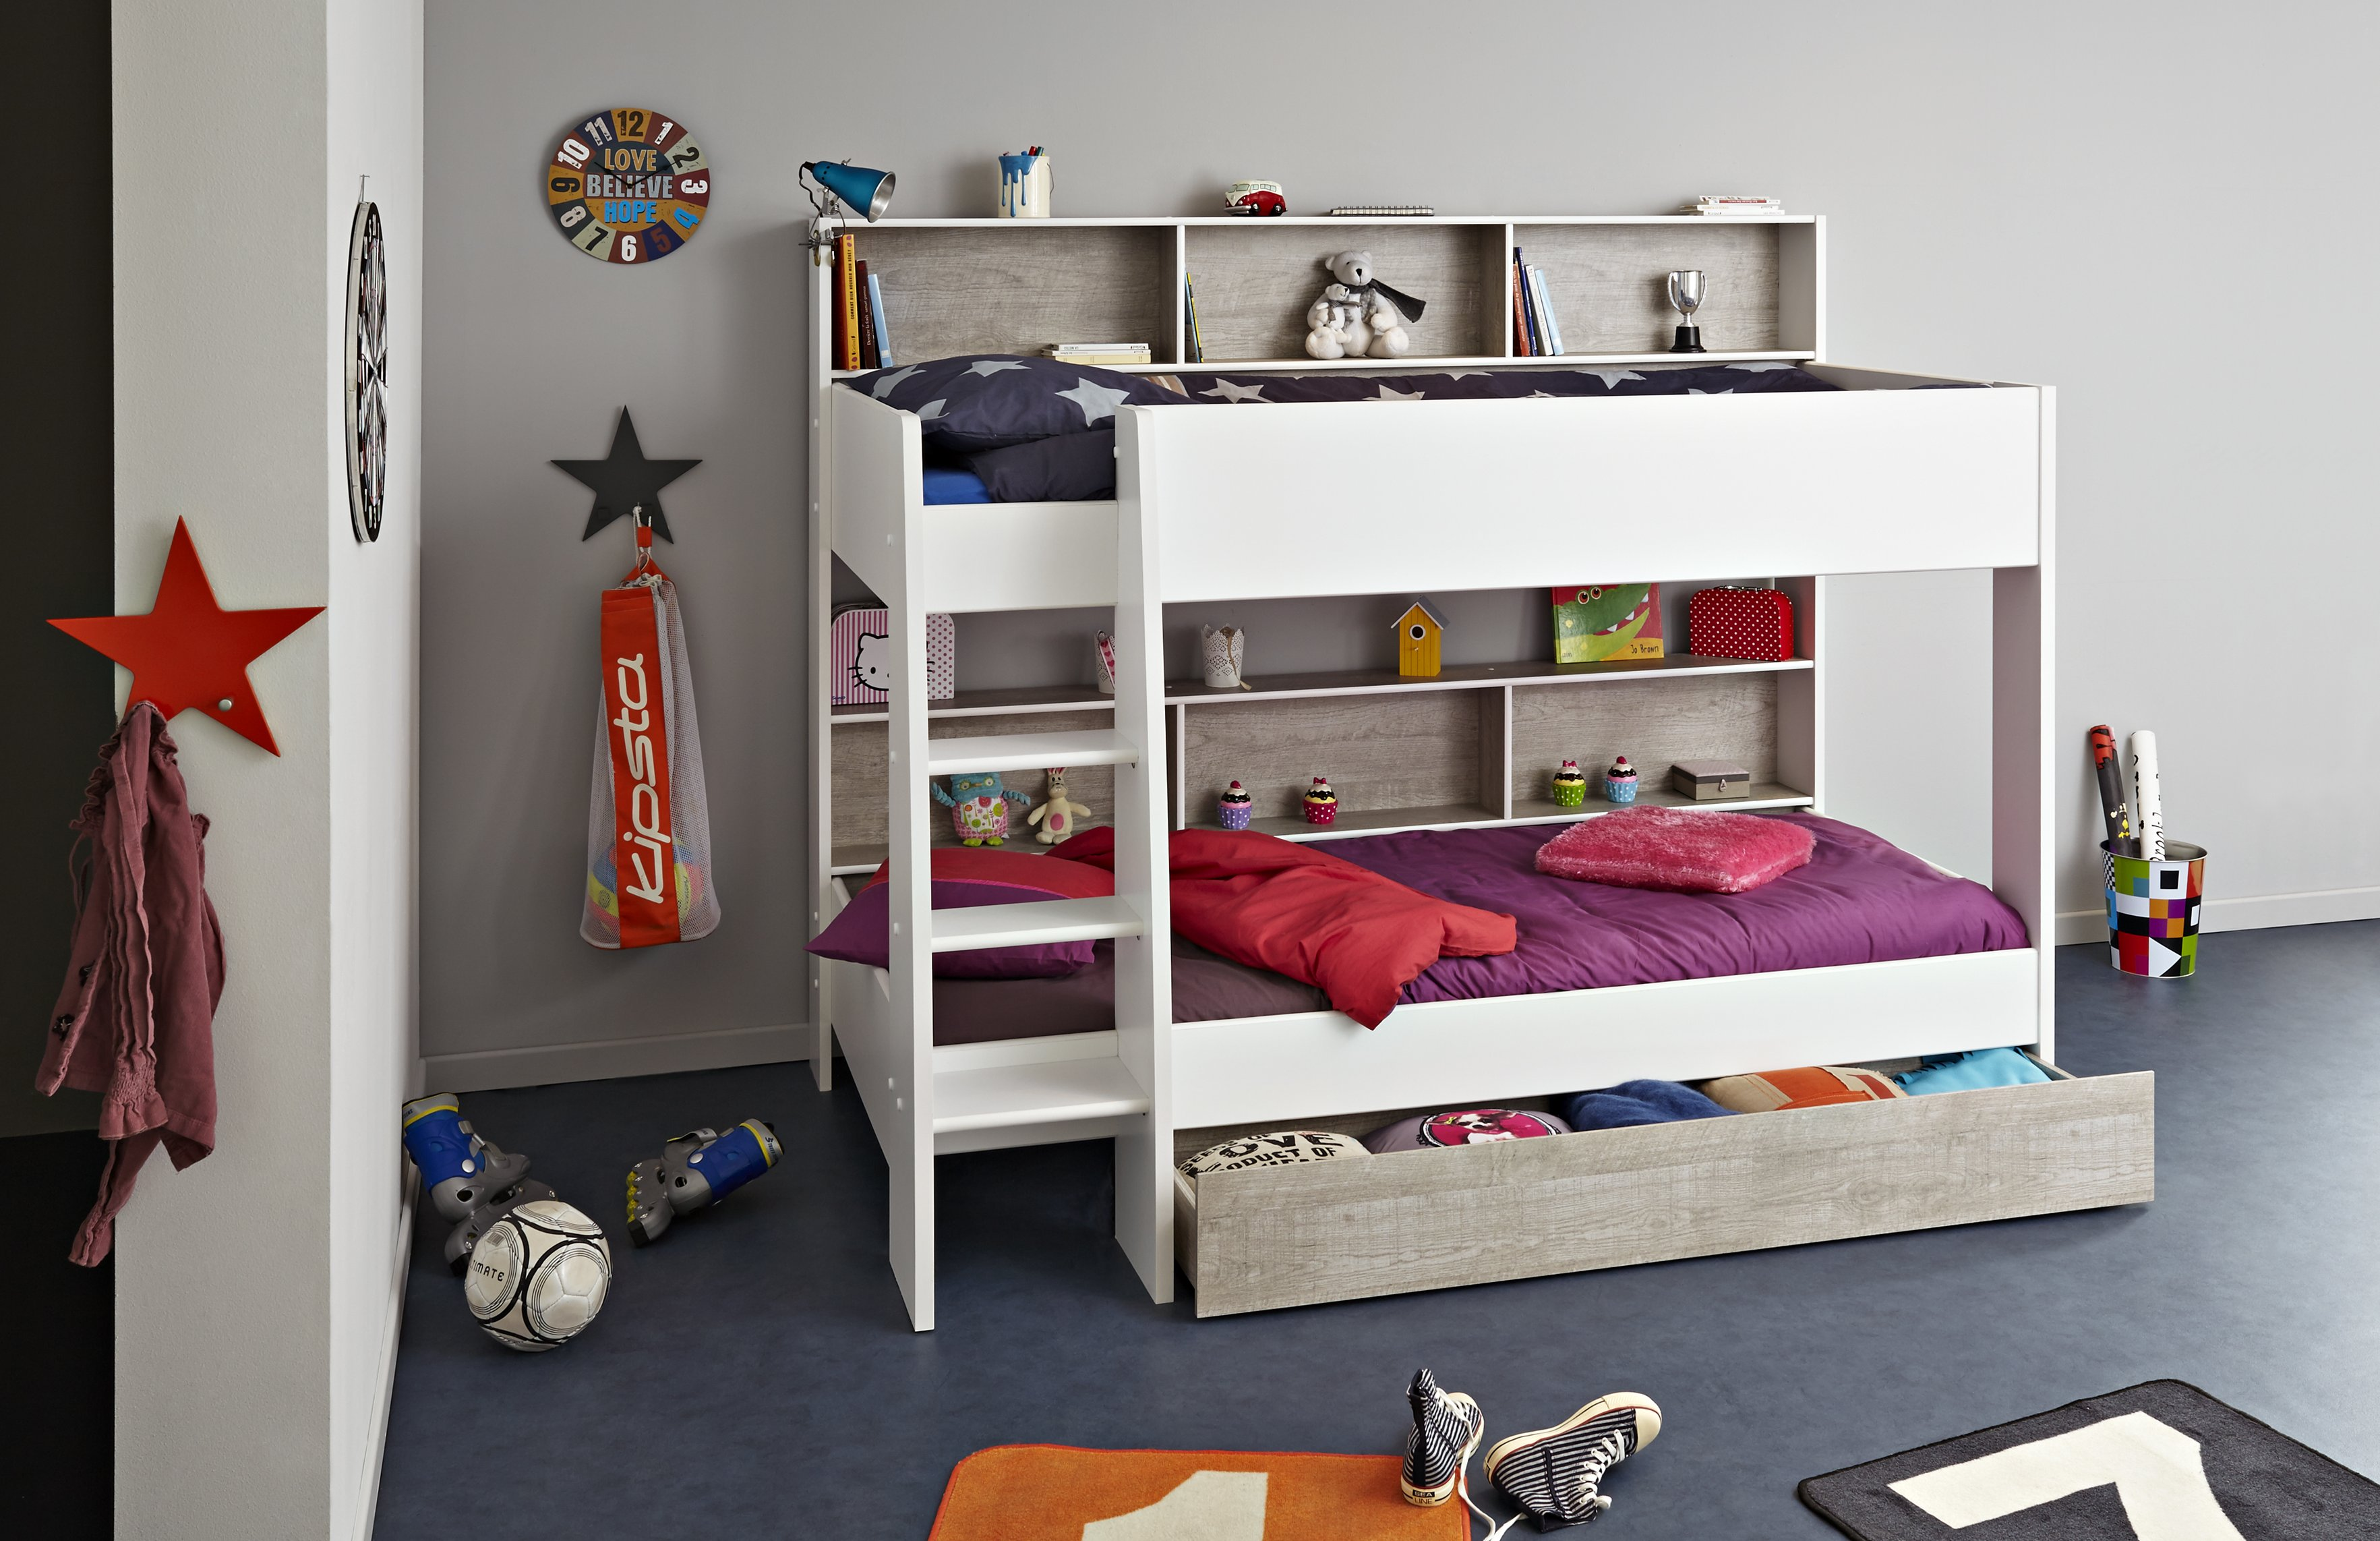 The Pros and Cons of a Bunk Bed